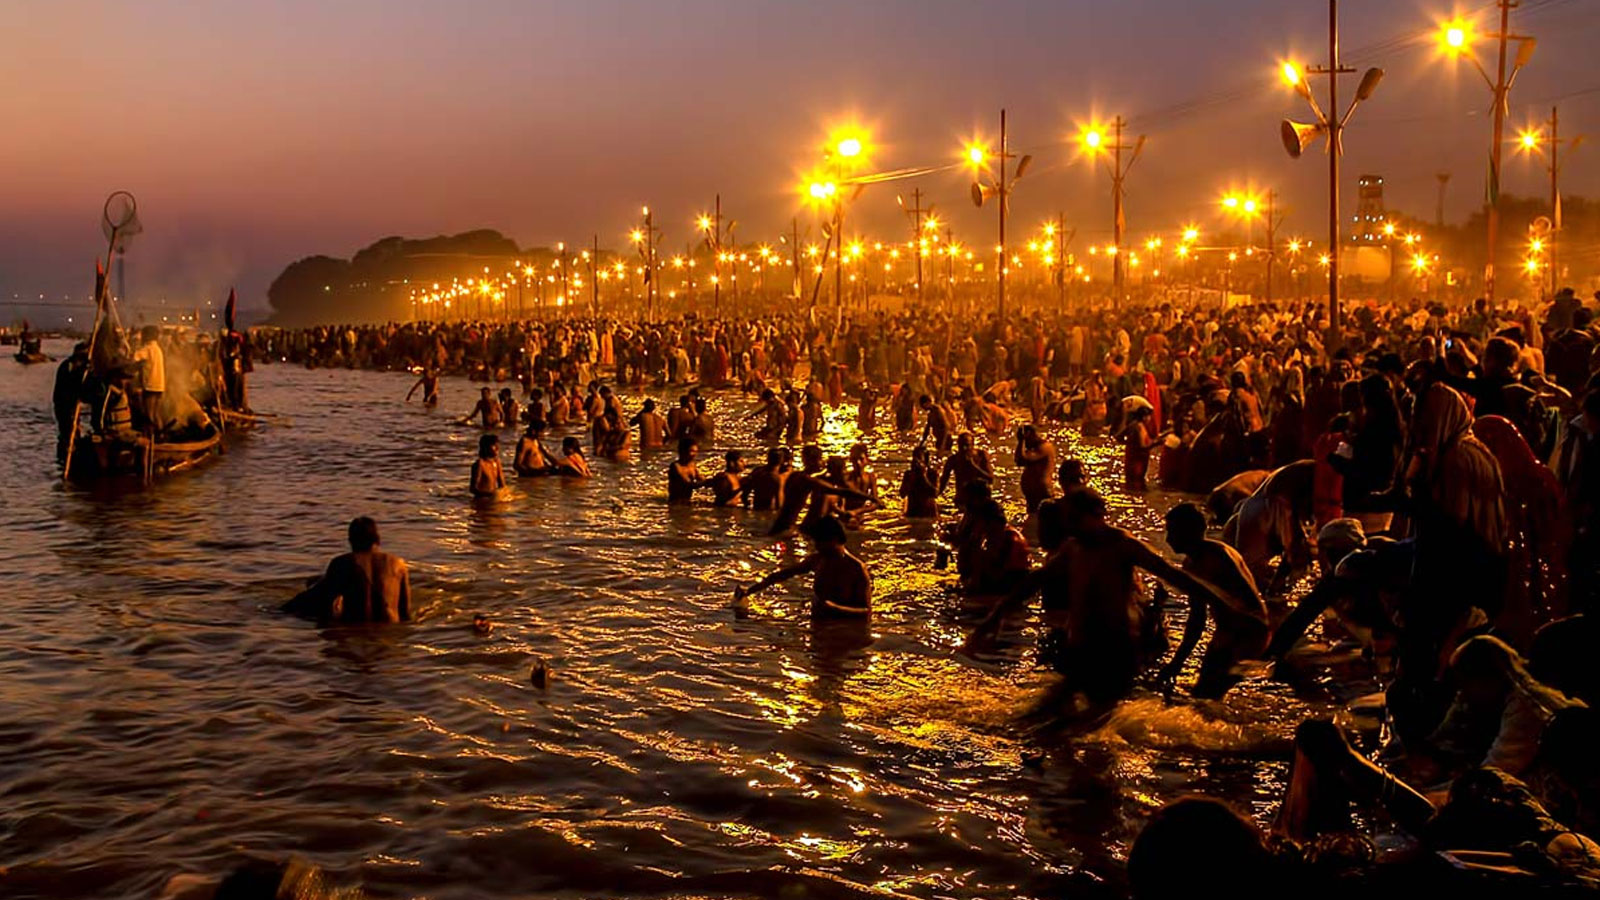 hindi essays on ganga river The ganga is the most sacred river for the hindus and is the lifeline of the millions of people living along its course in fact, the ganga basin is the most heavily populated river basin in the world.